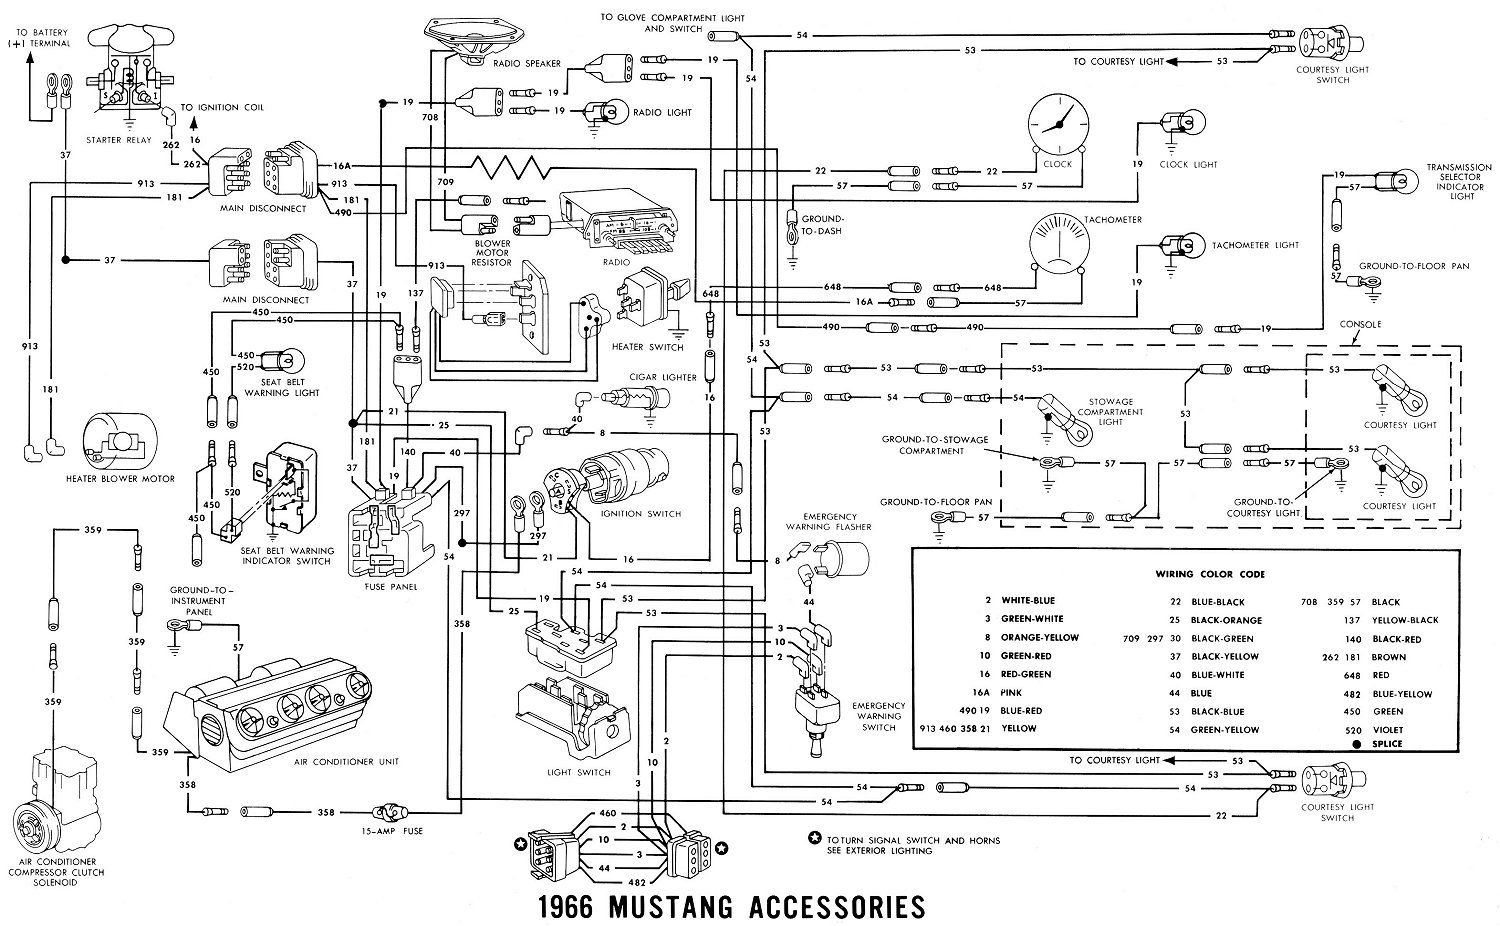 66acces1 63 fairlane wiper motor wiring hot rod forum hotrodders 1966 ford fairlane wiring diagram at mifinder.co